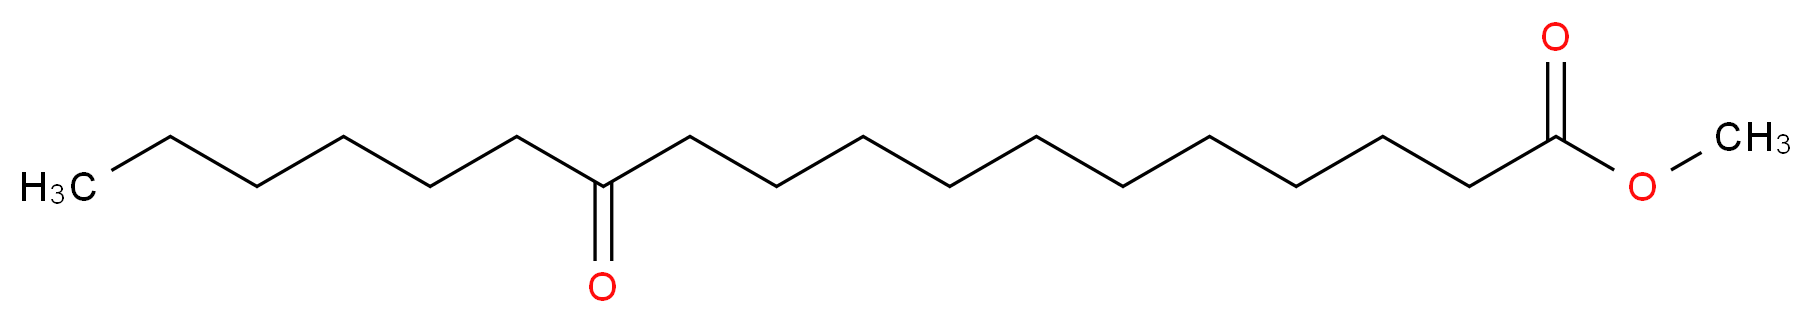 methyl 12-oxooctadecanoate_分子结构_CAS_2380-27-0